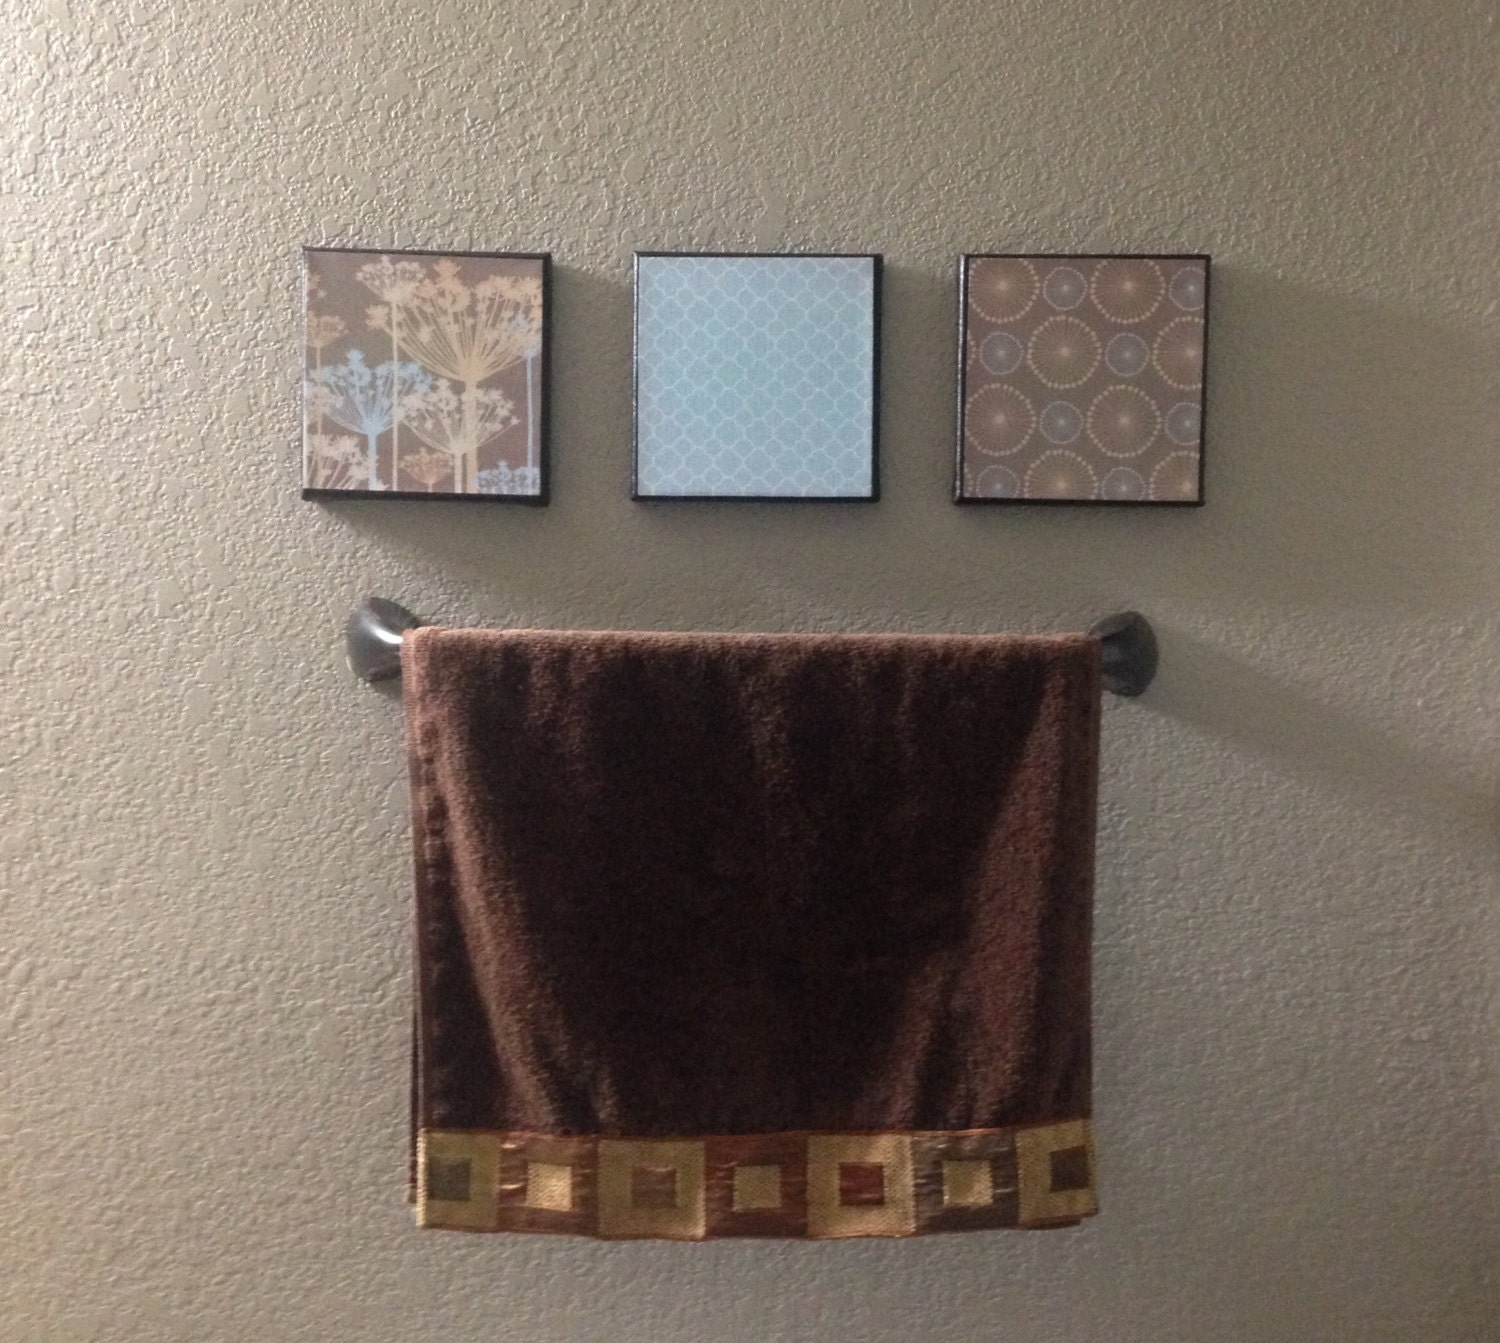 Bathroom Pictures And Canvases : Bathroom decor room canvas piece wall